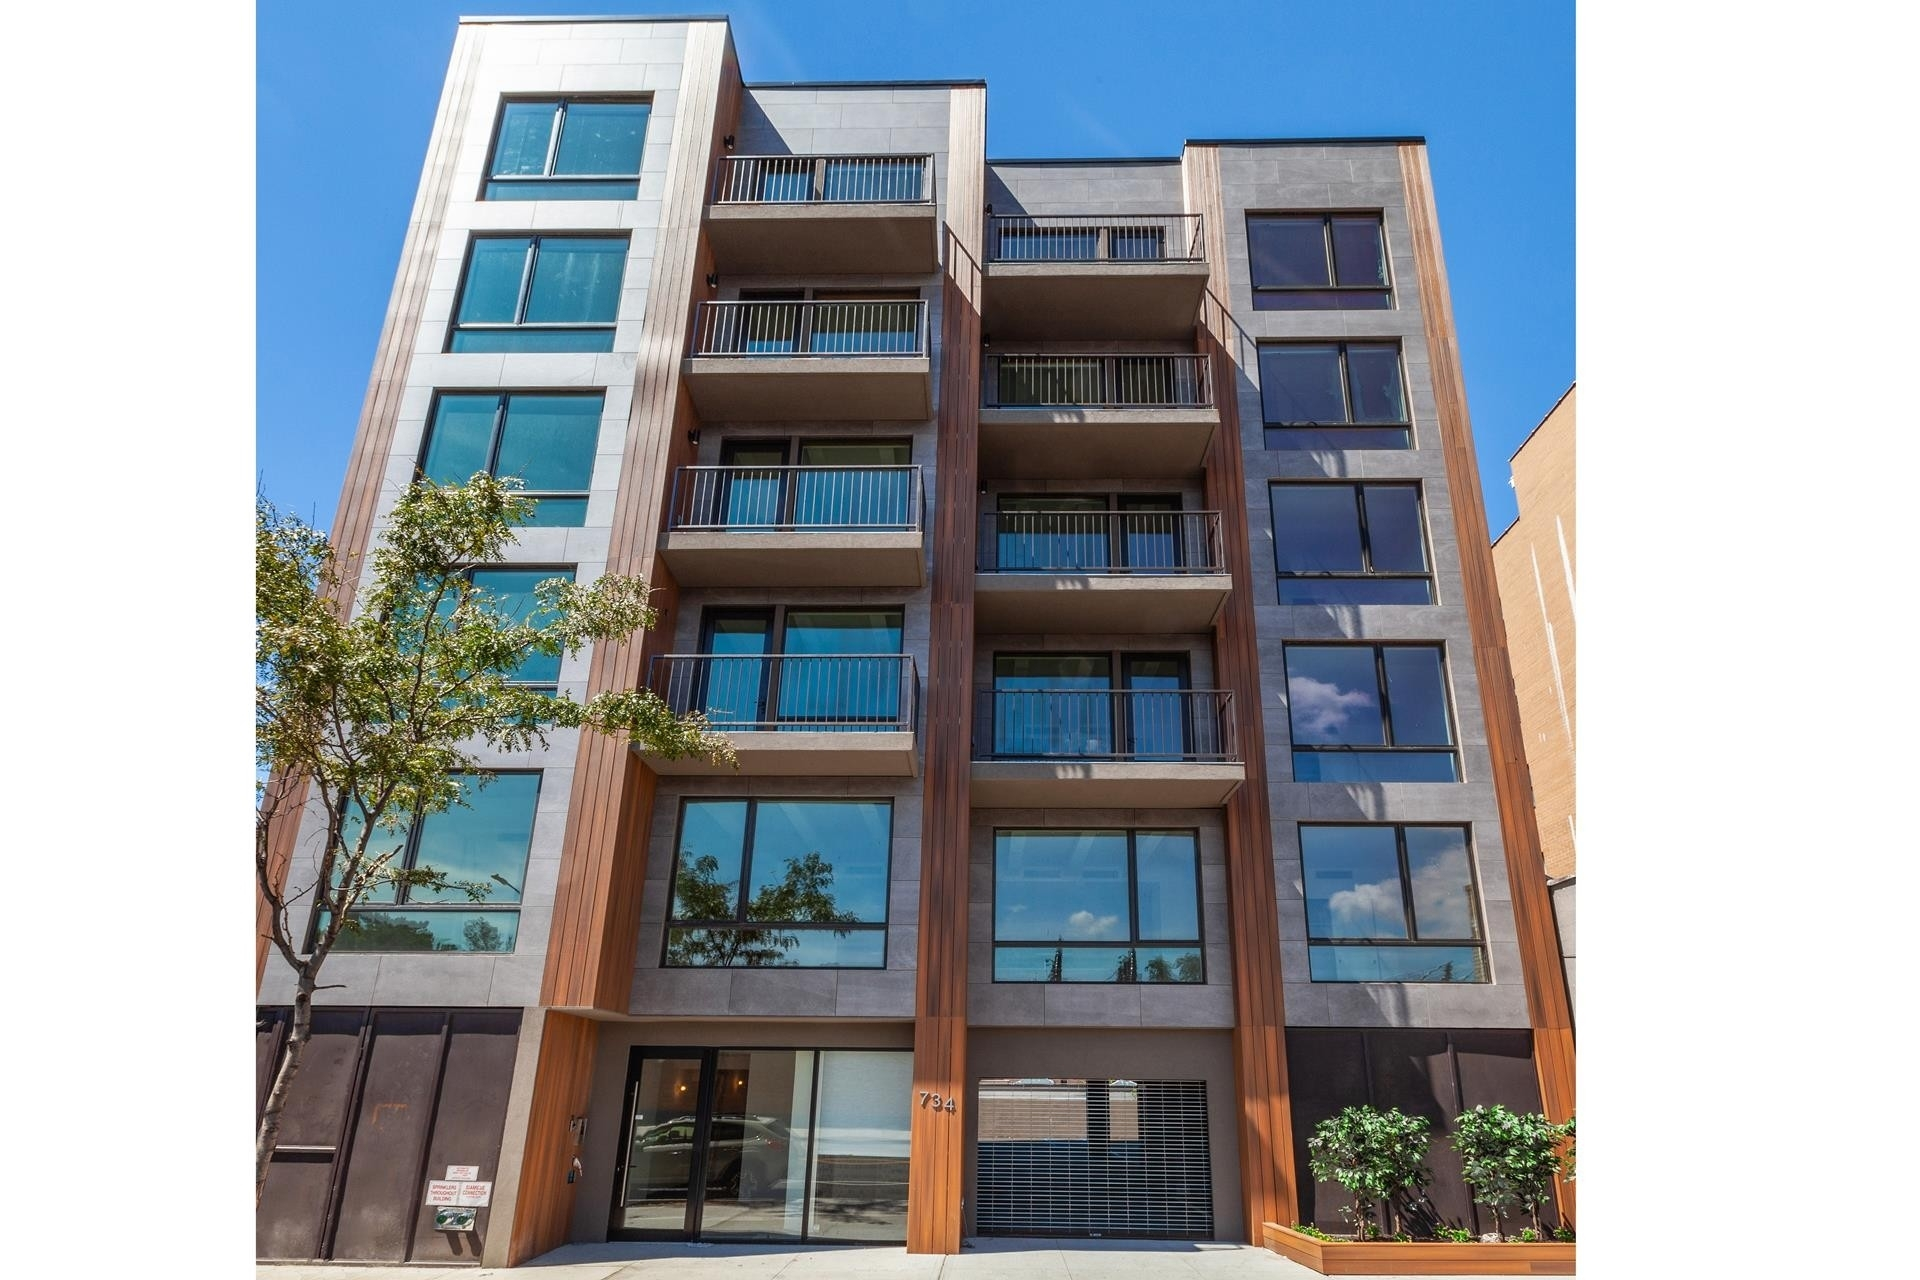 13. Condominiums for Sale at 734 Fifth Avenue, 6B Greenwood, Brooklyn, NY 11232